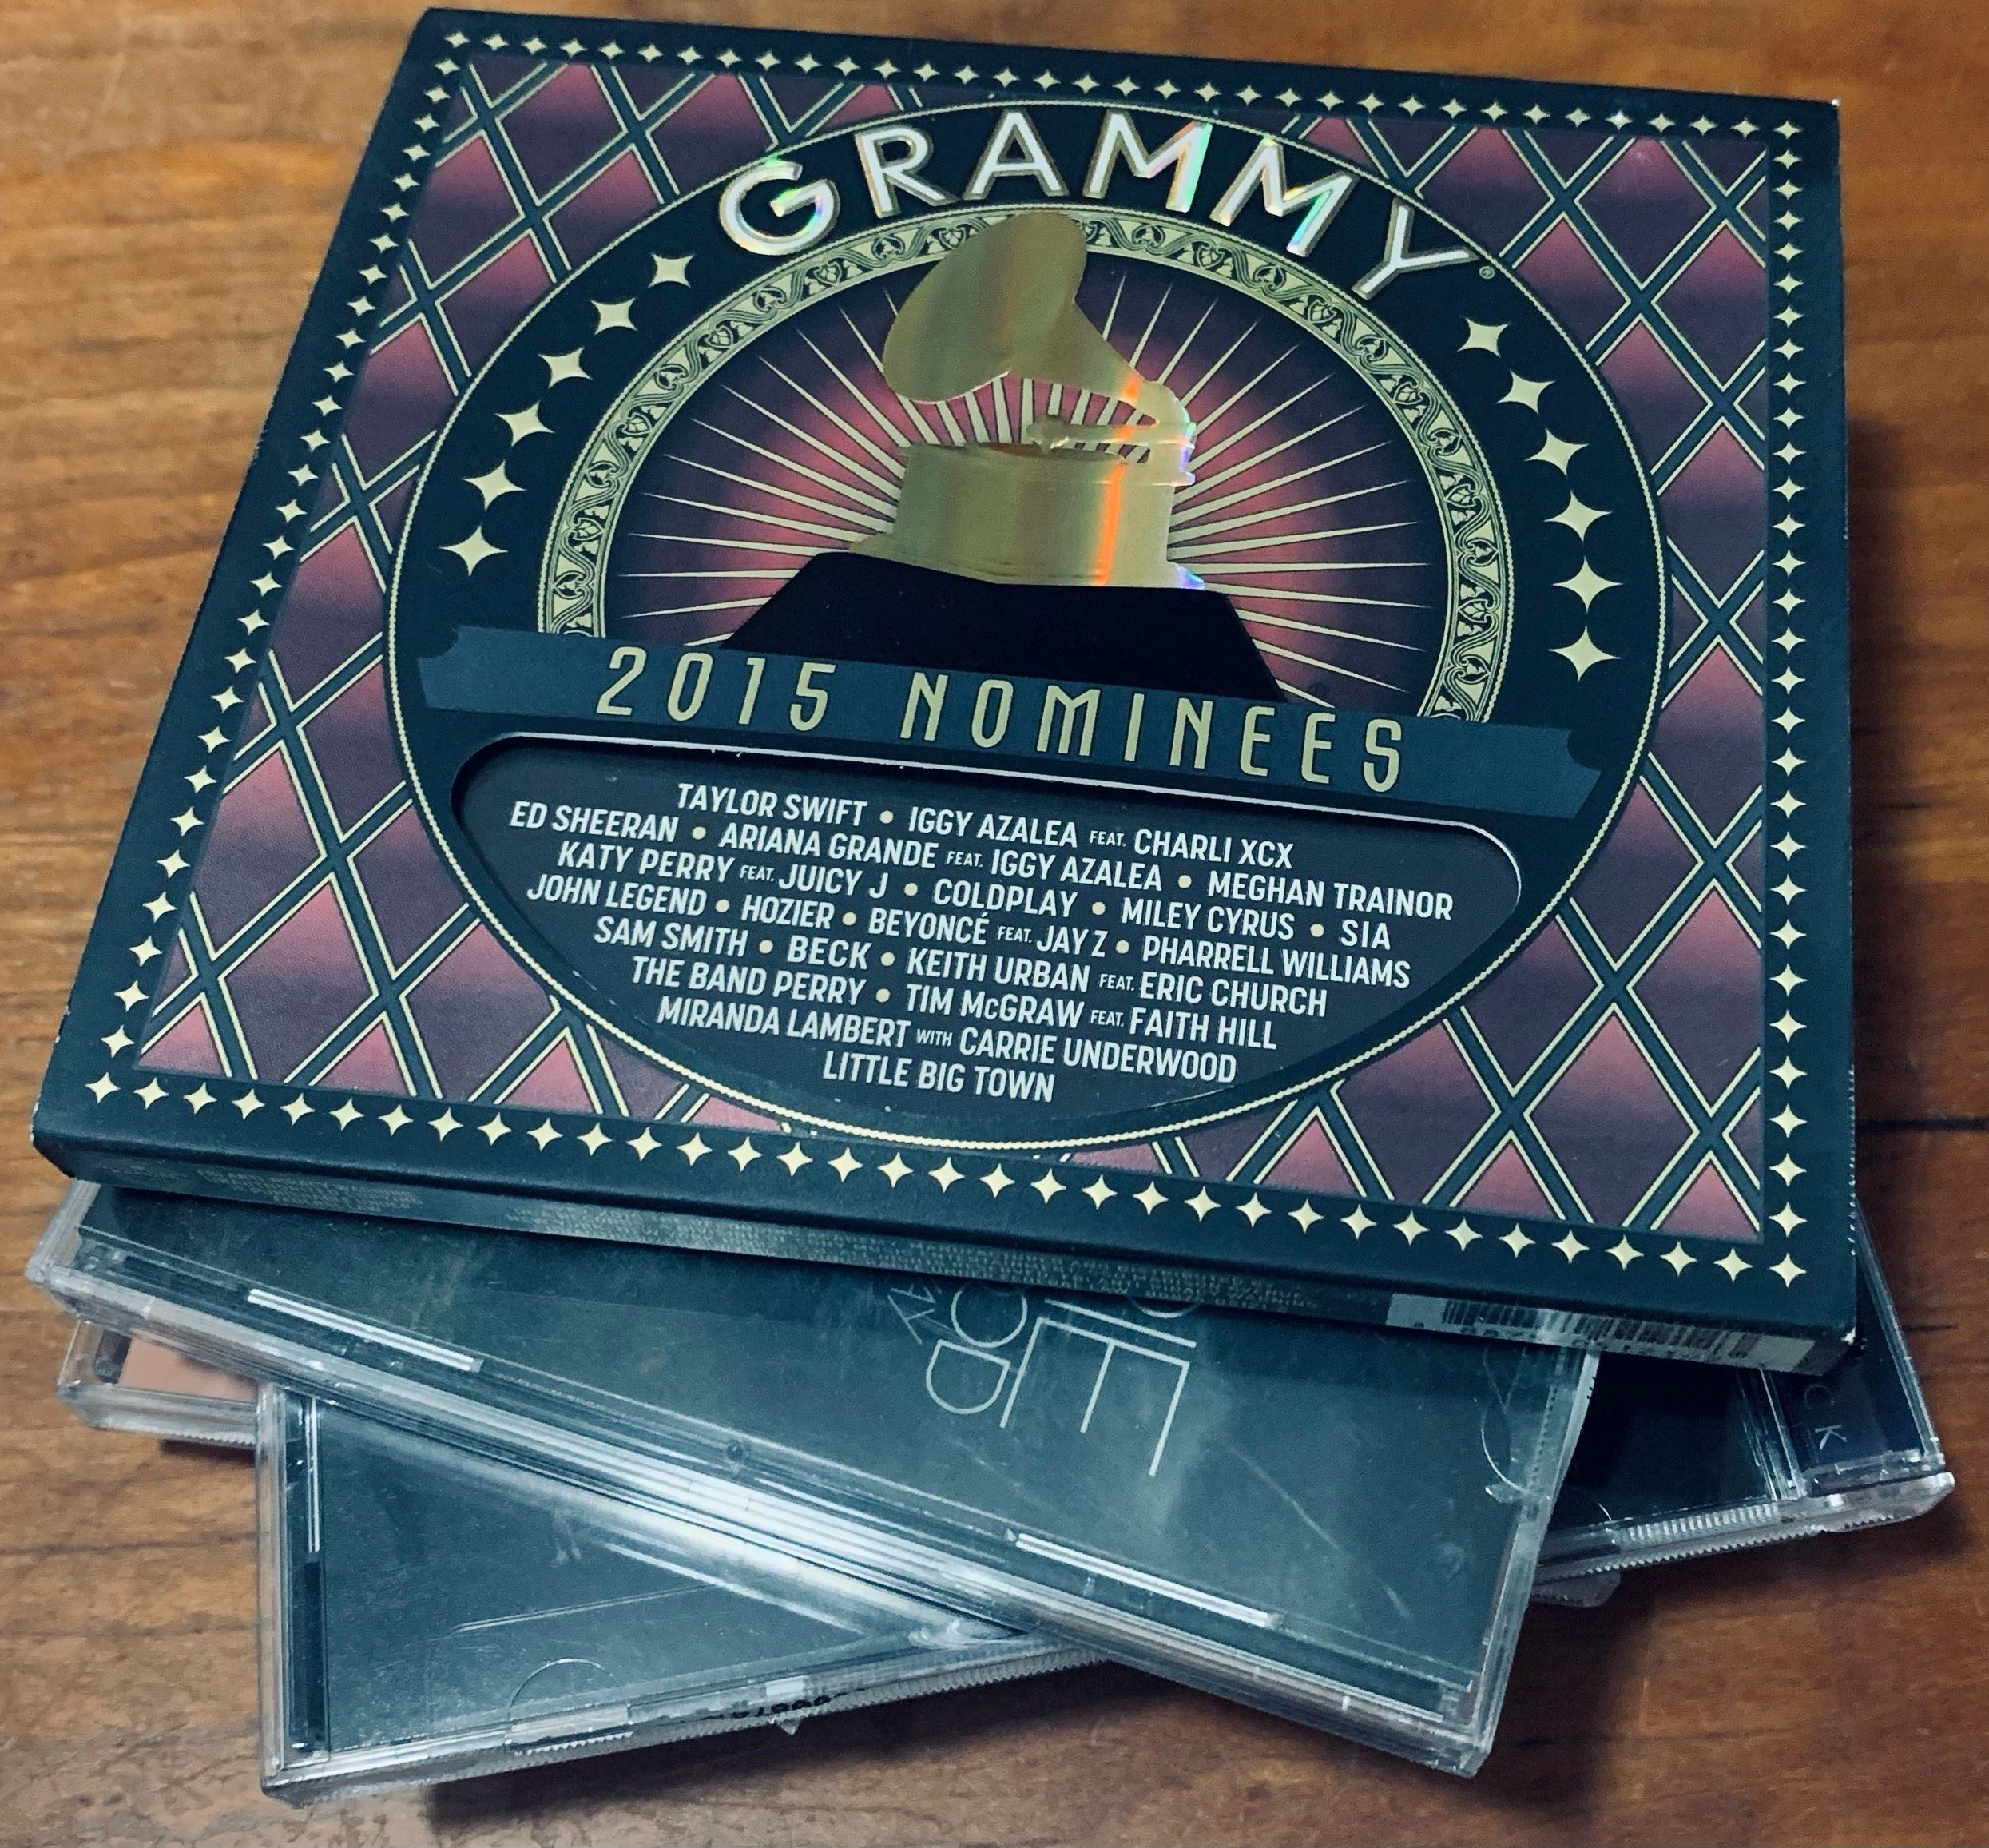 PHOTOVOICE - GRAMMY AWARDS CD COVER